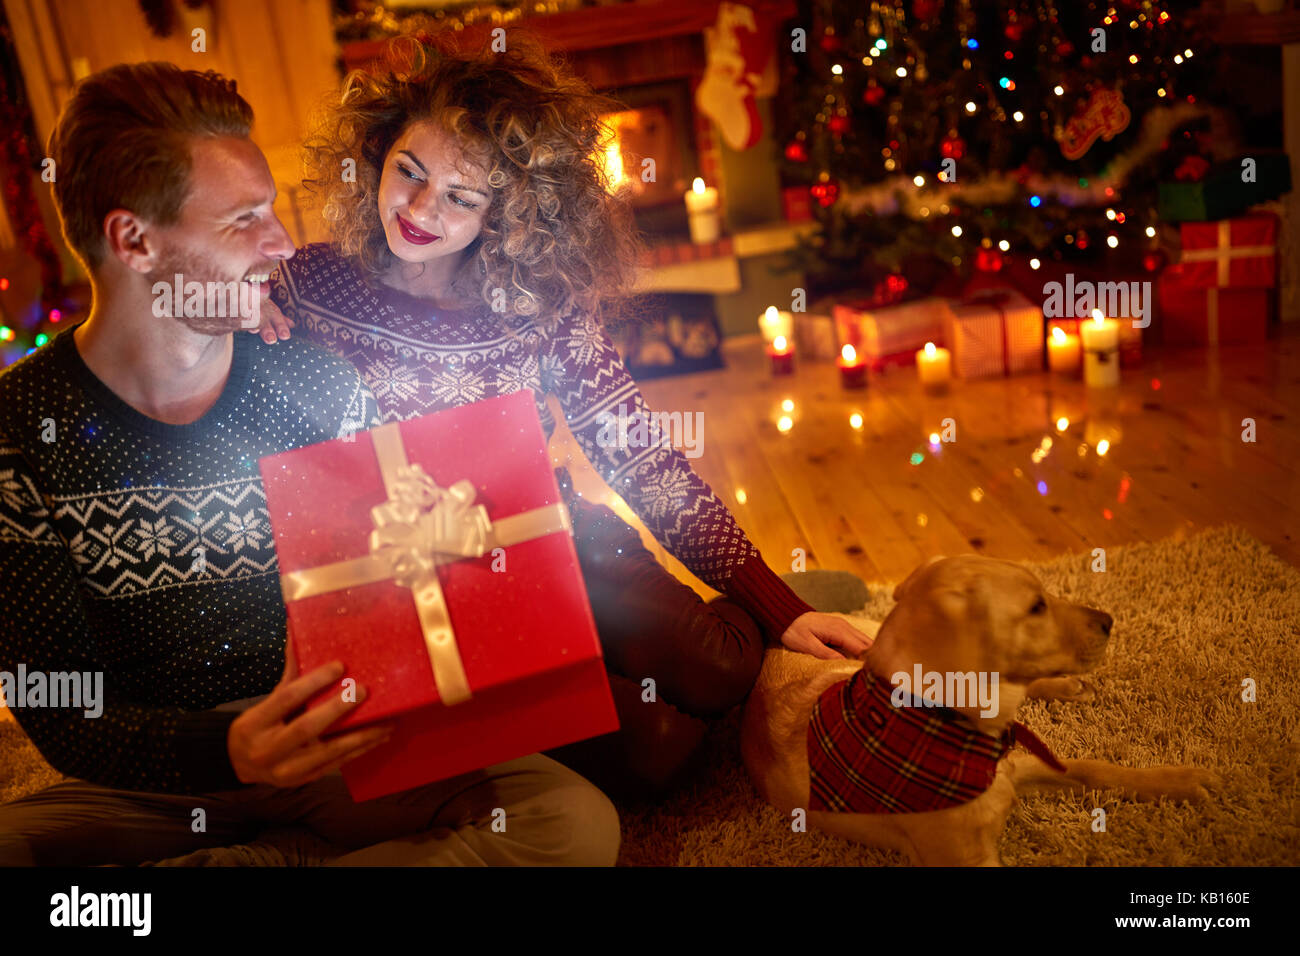 A Boyfriend For Christmas.Girl Gives Magical Gift In Box To His Boyfriend For